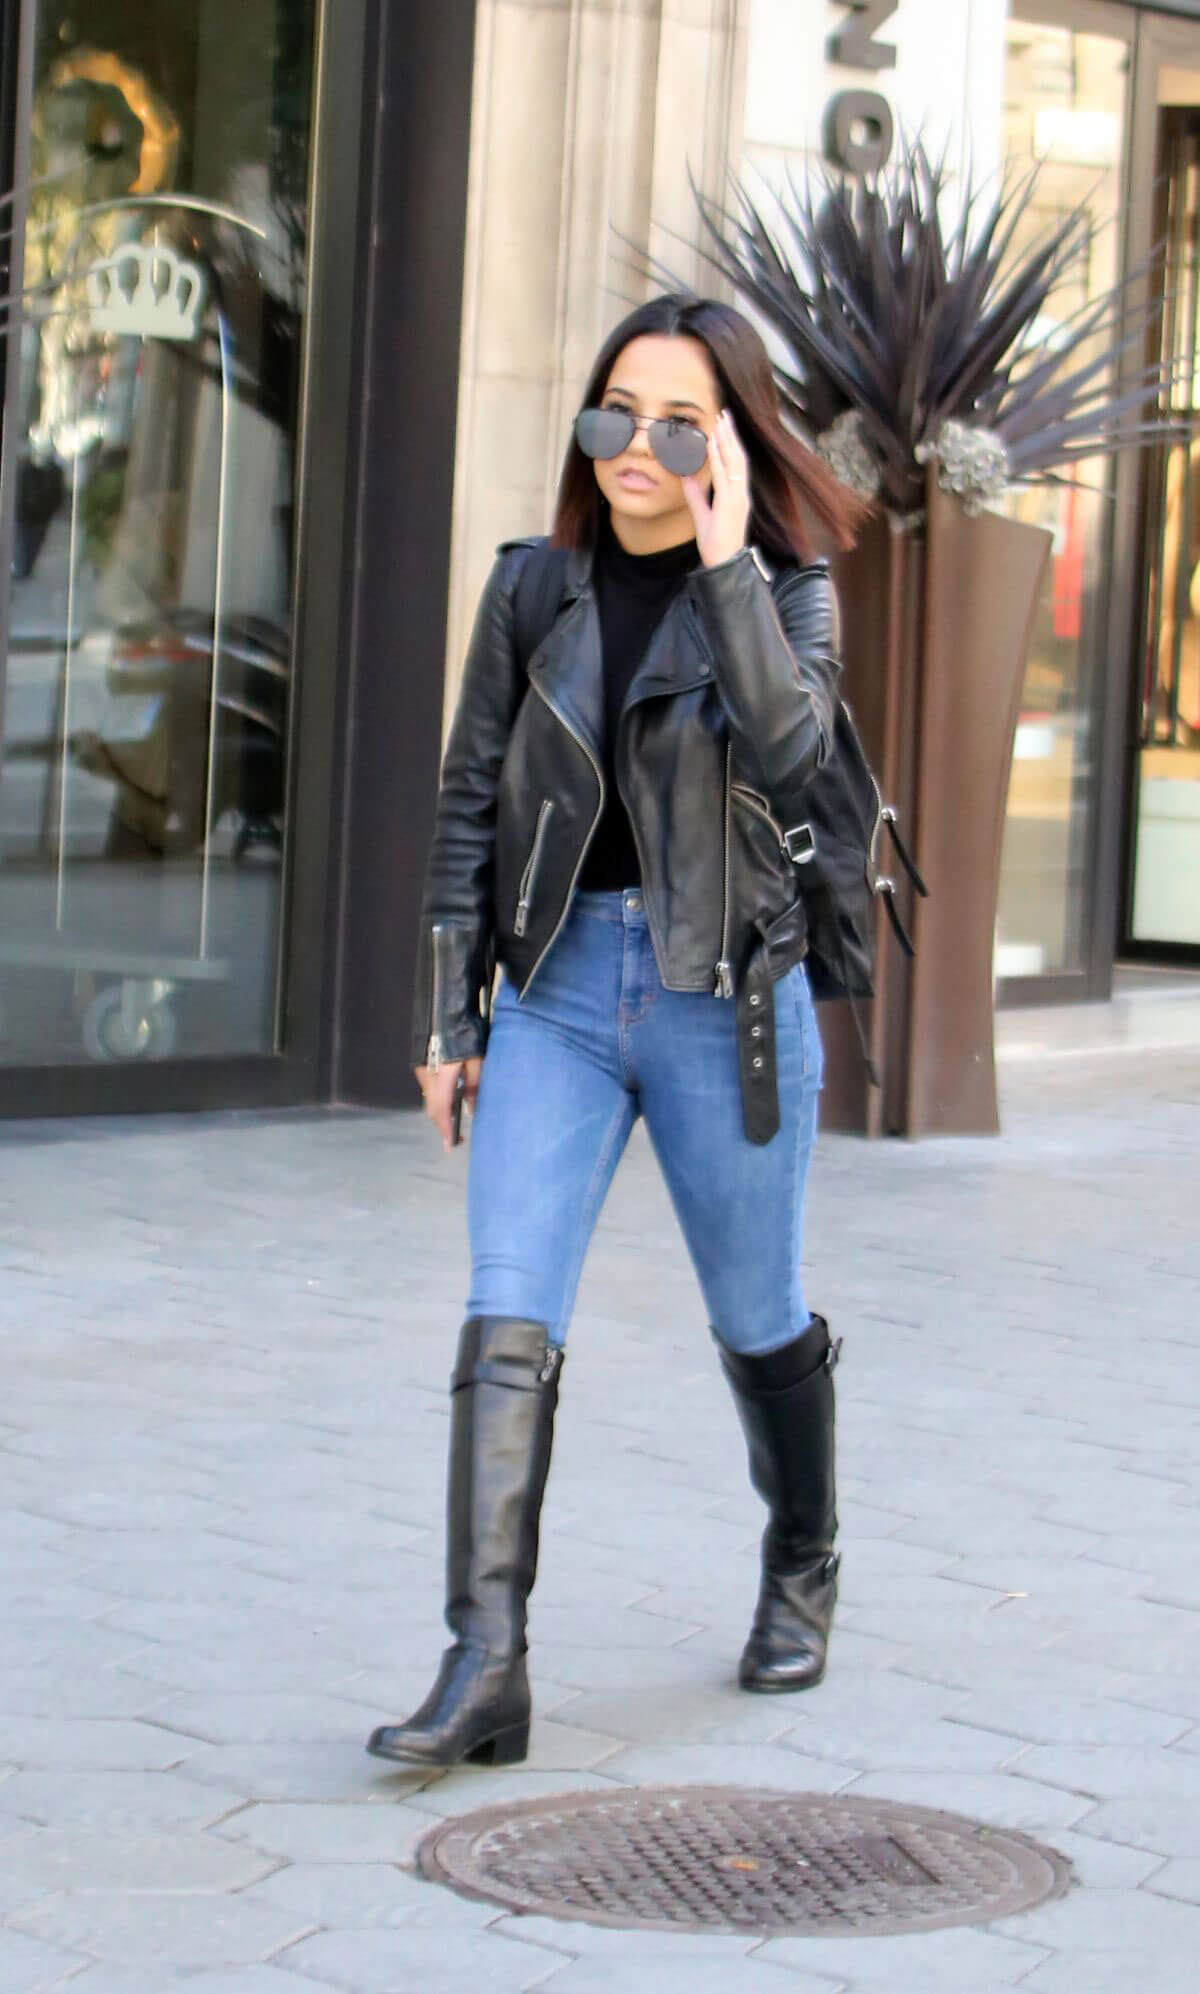 Becky G wears Black Leather Jacket & Blue Jeans Out and About in Barcelona